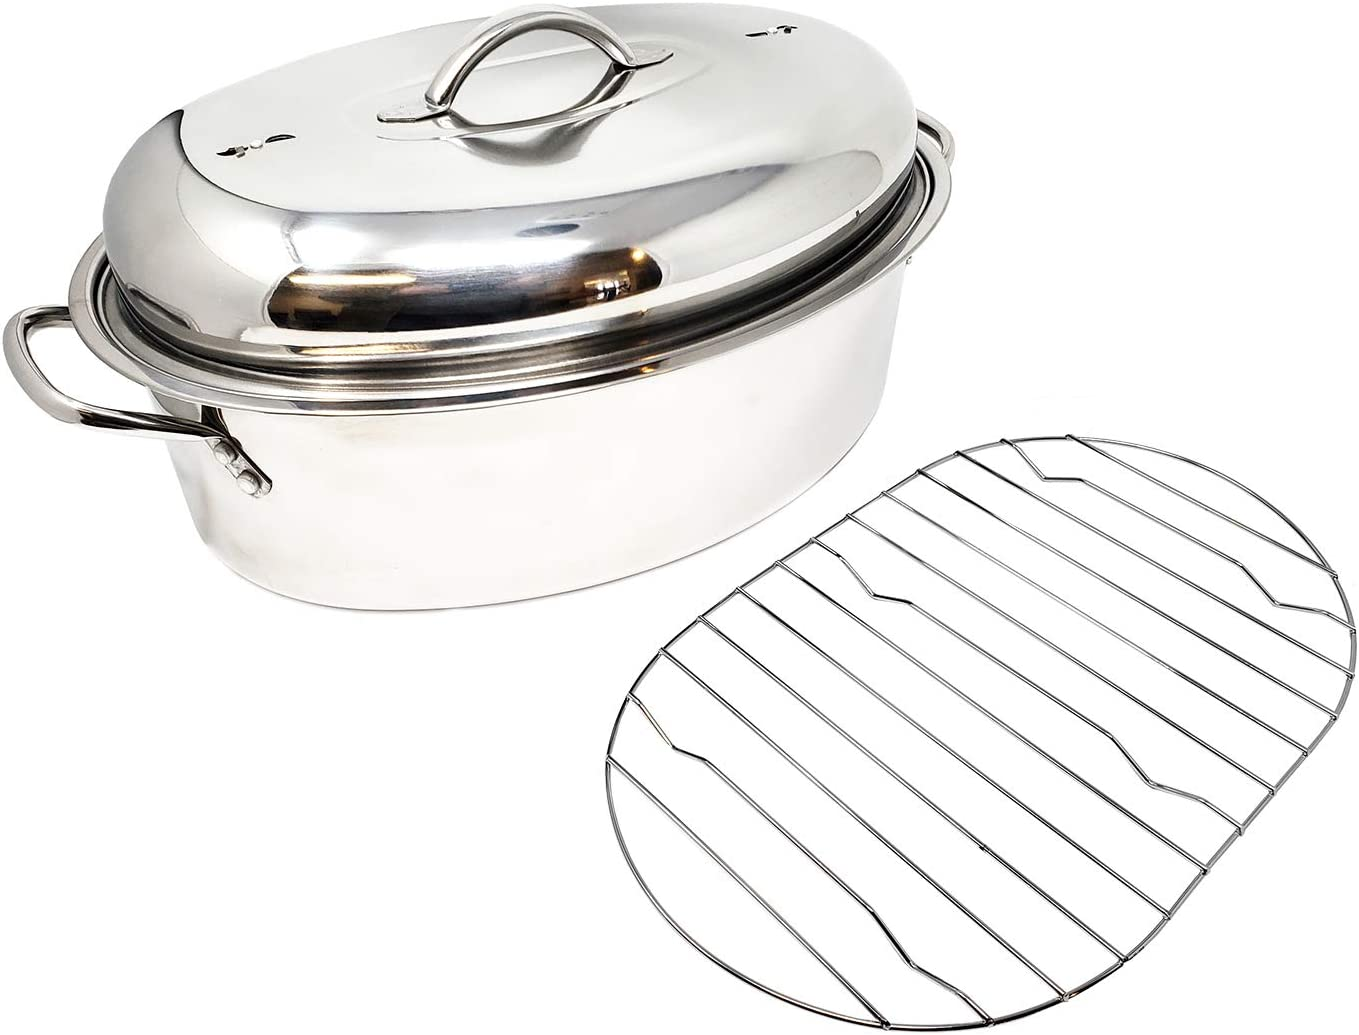 Stainless Steel Luxury goods Oval Max 50% OFF Lidded Roaster Large Extra Pan Lightweigh